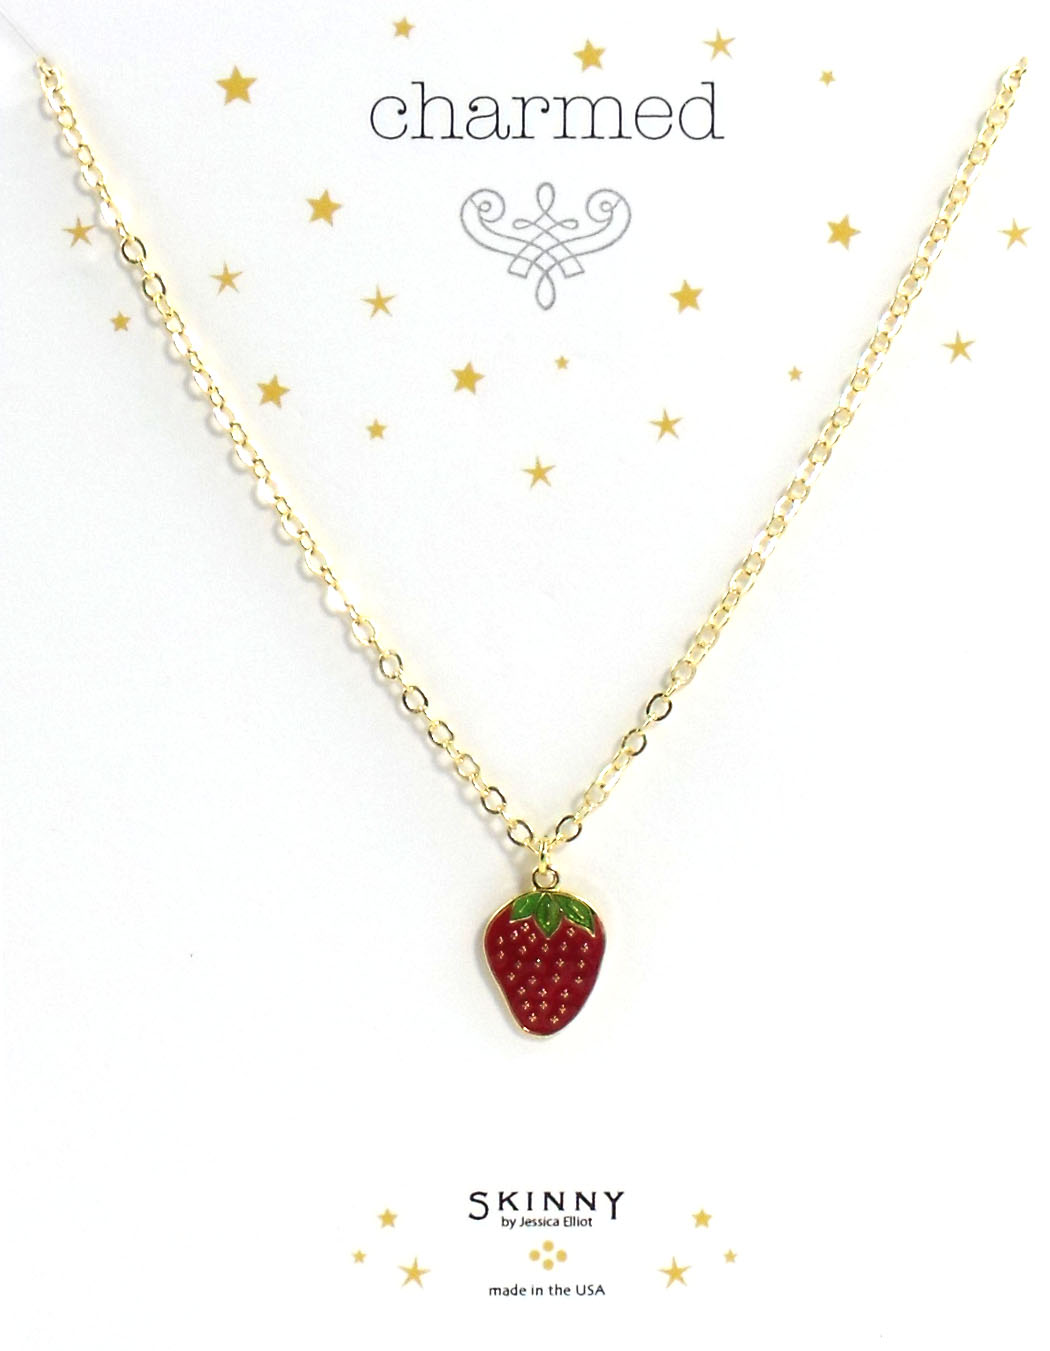 Skinny Jewelry Strawberry Charm Necklace Gold, by Jessica Elliot